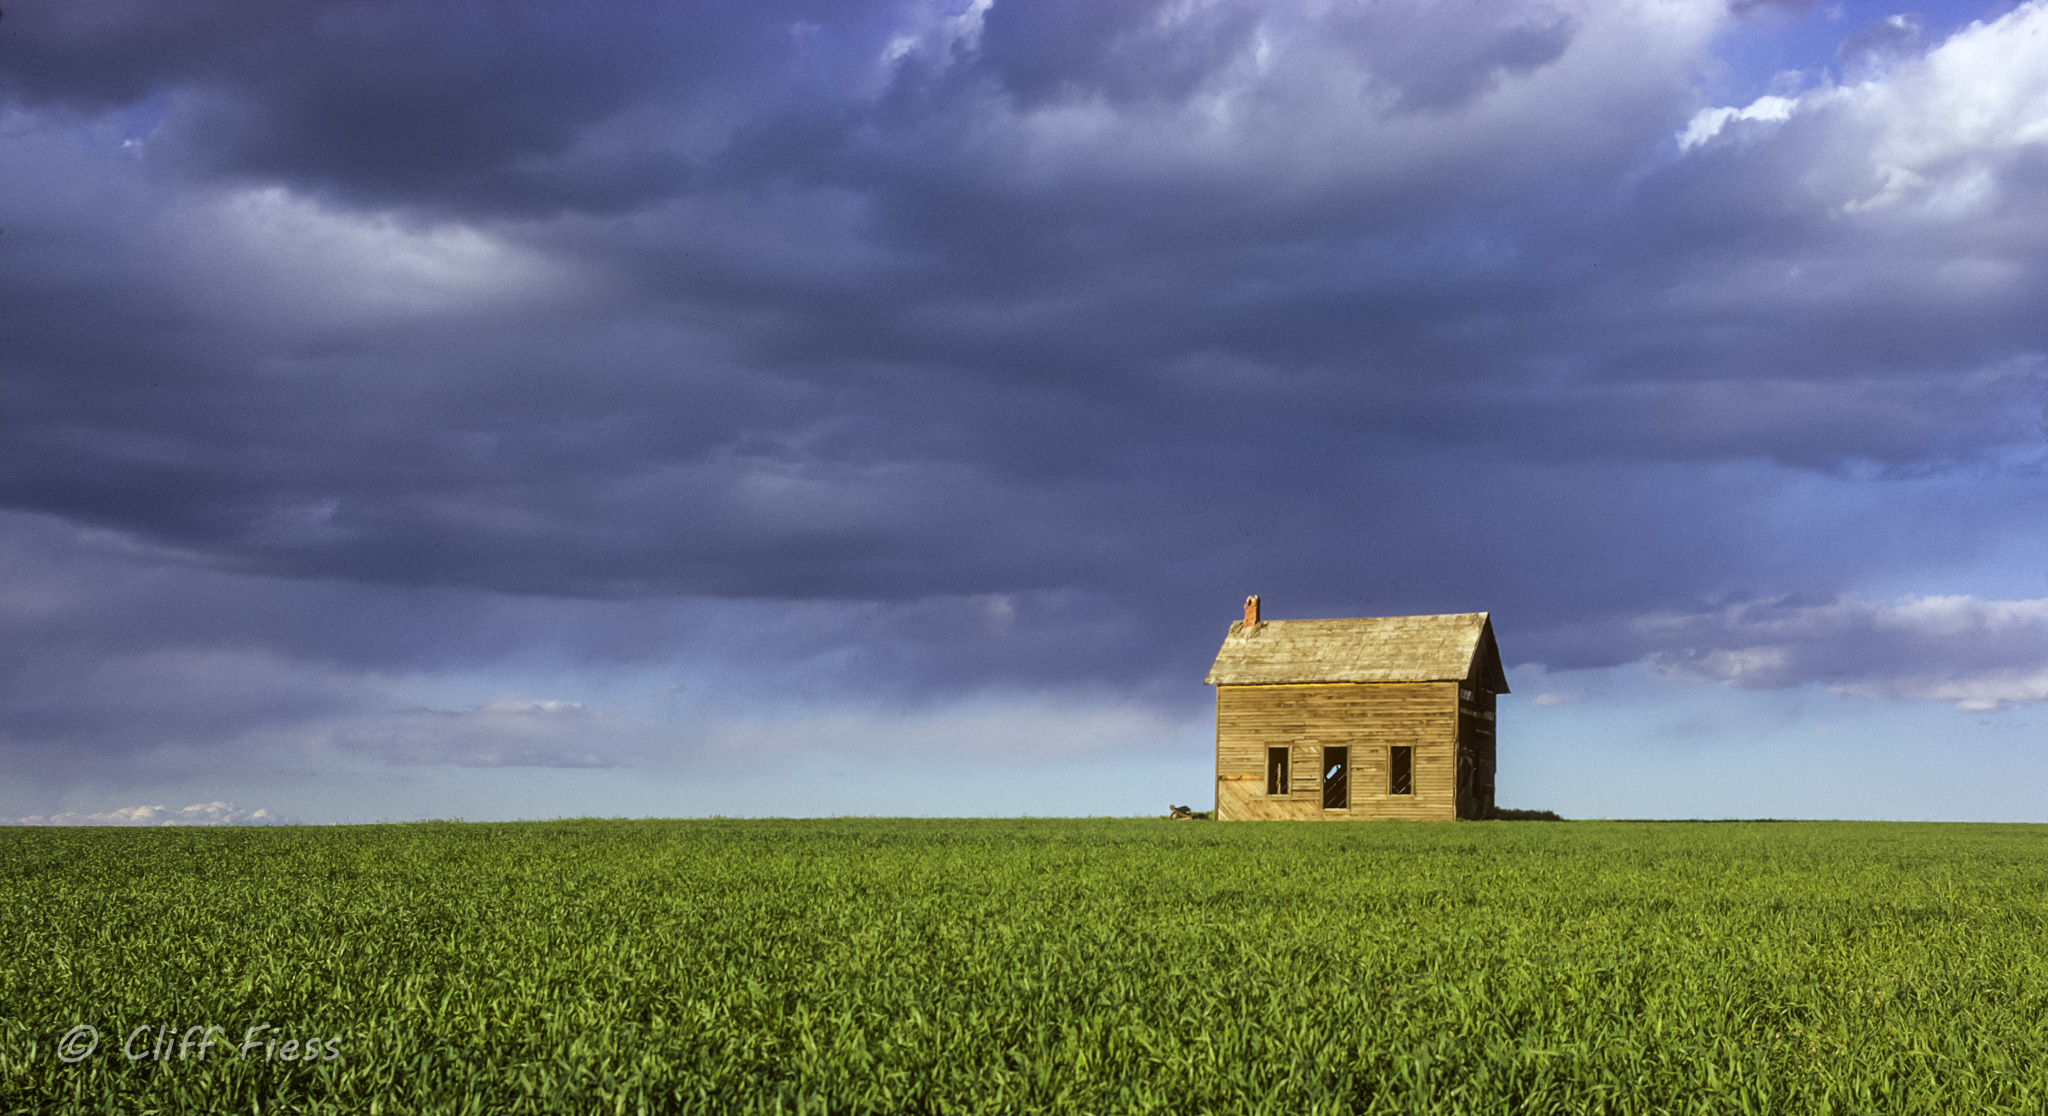 Abandoned house in a wheat field